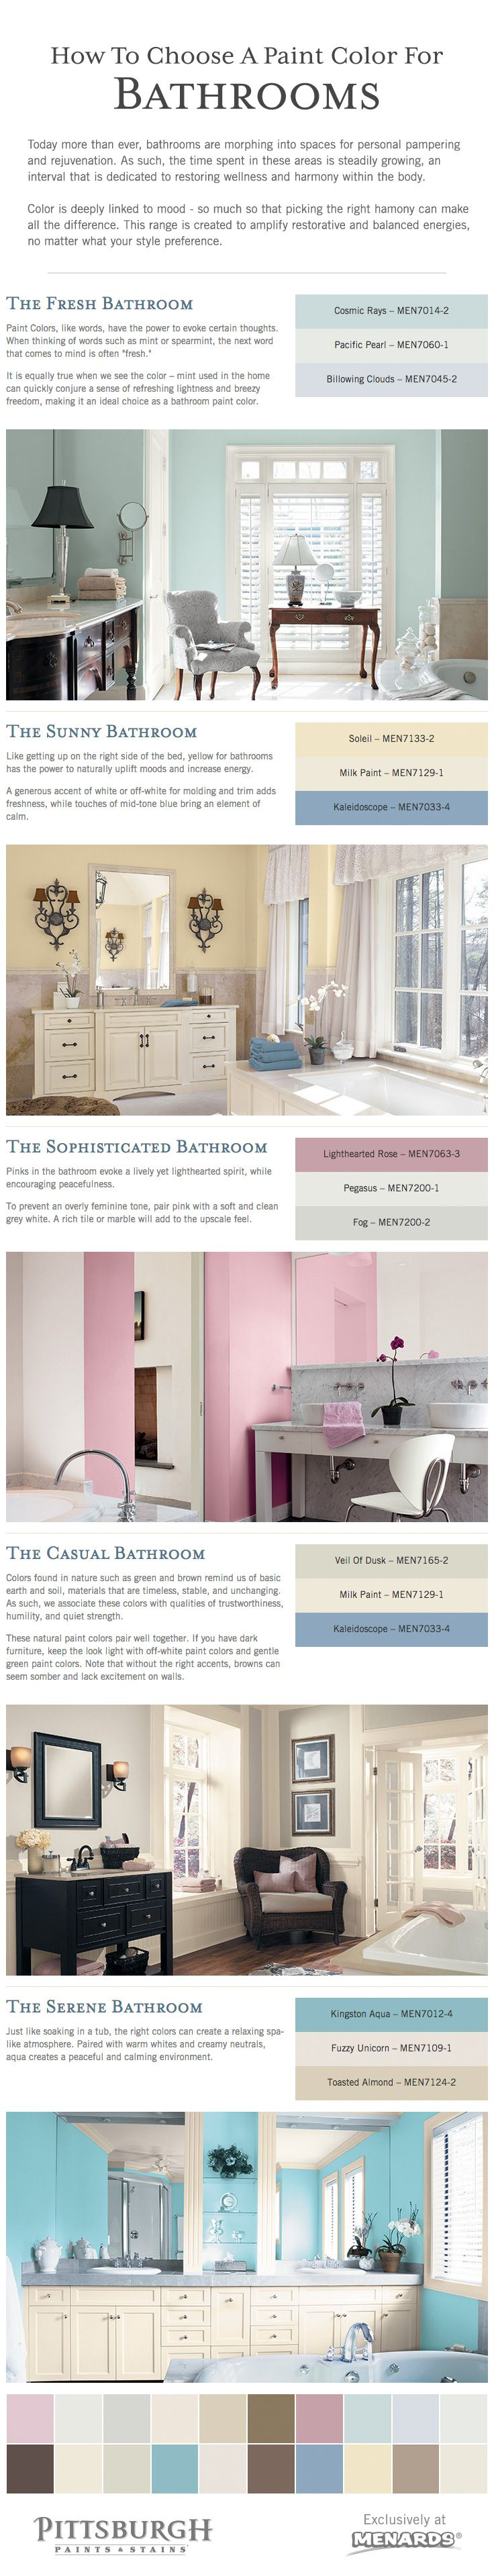 how to choose a paint colorHow To Choose A Paint Color For A Bathroom Tips Today more than